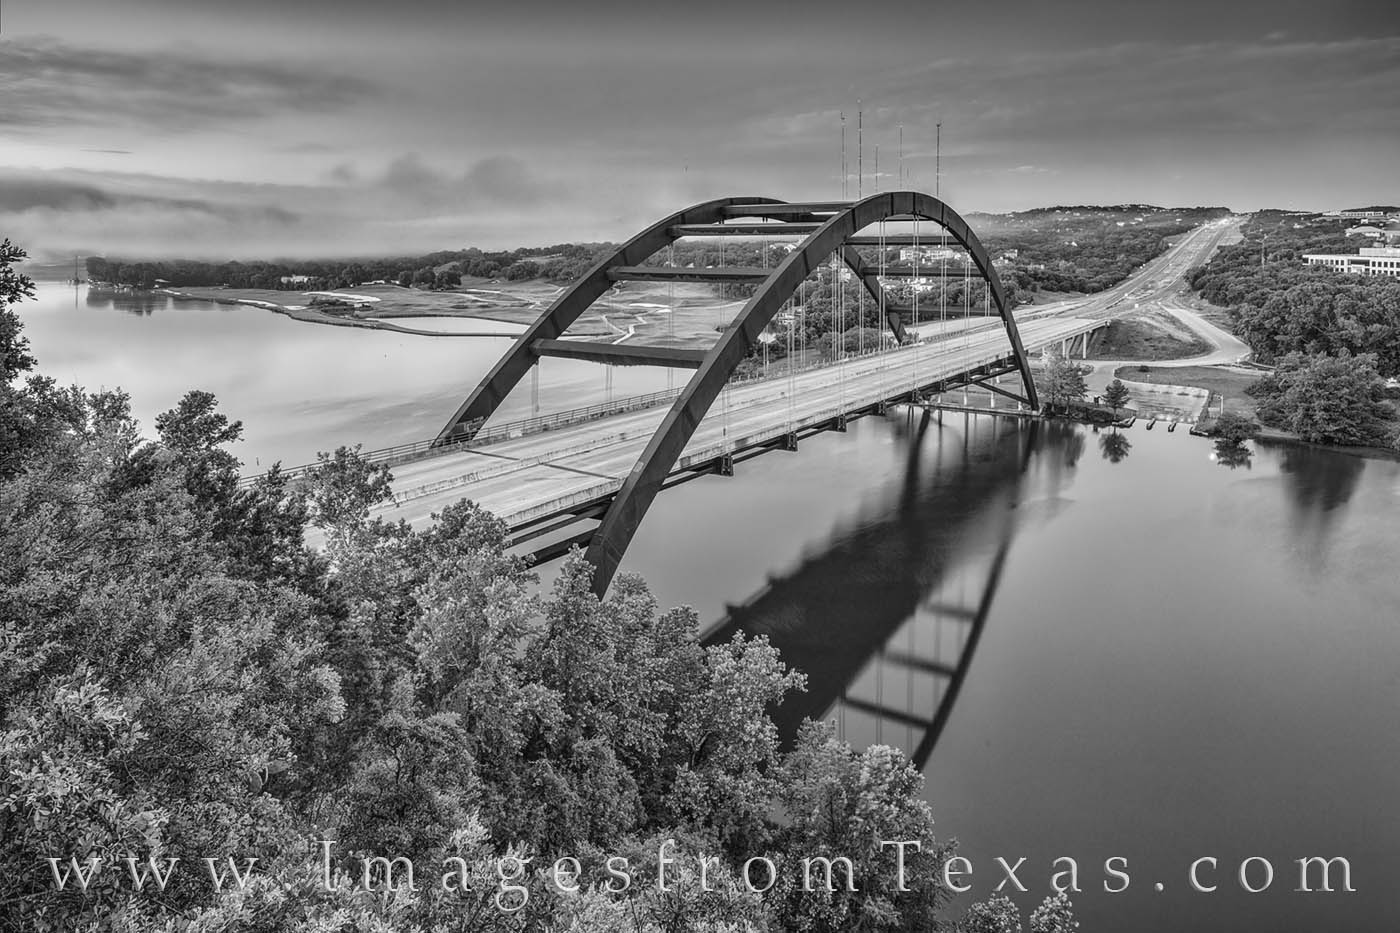 Looking over the Colorado River and iconic 360 Bridge, the famous overlook from where this black and white image was taken offers...